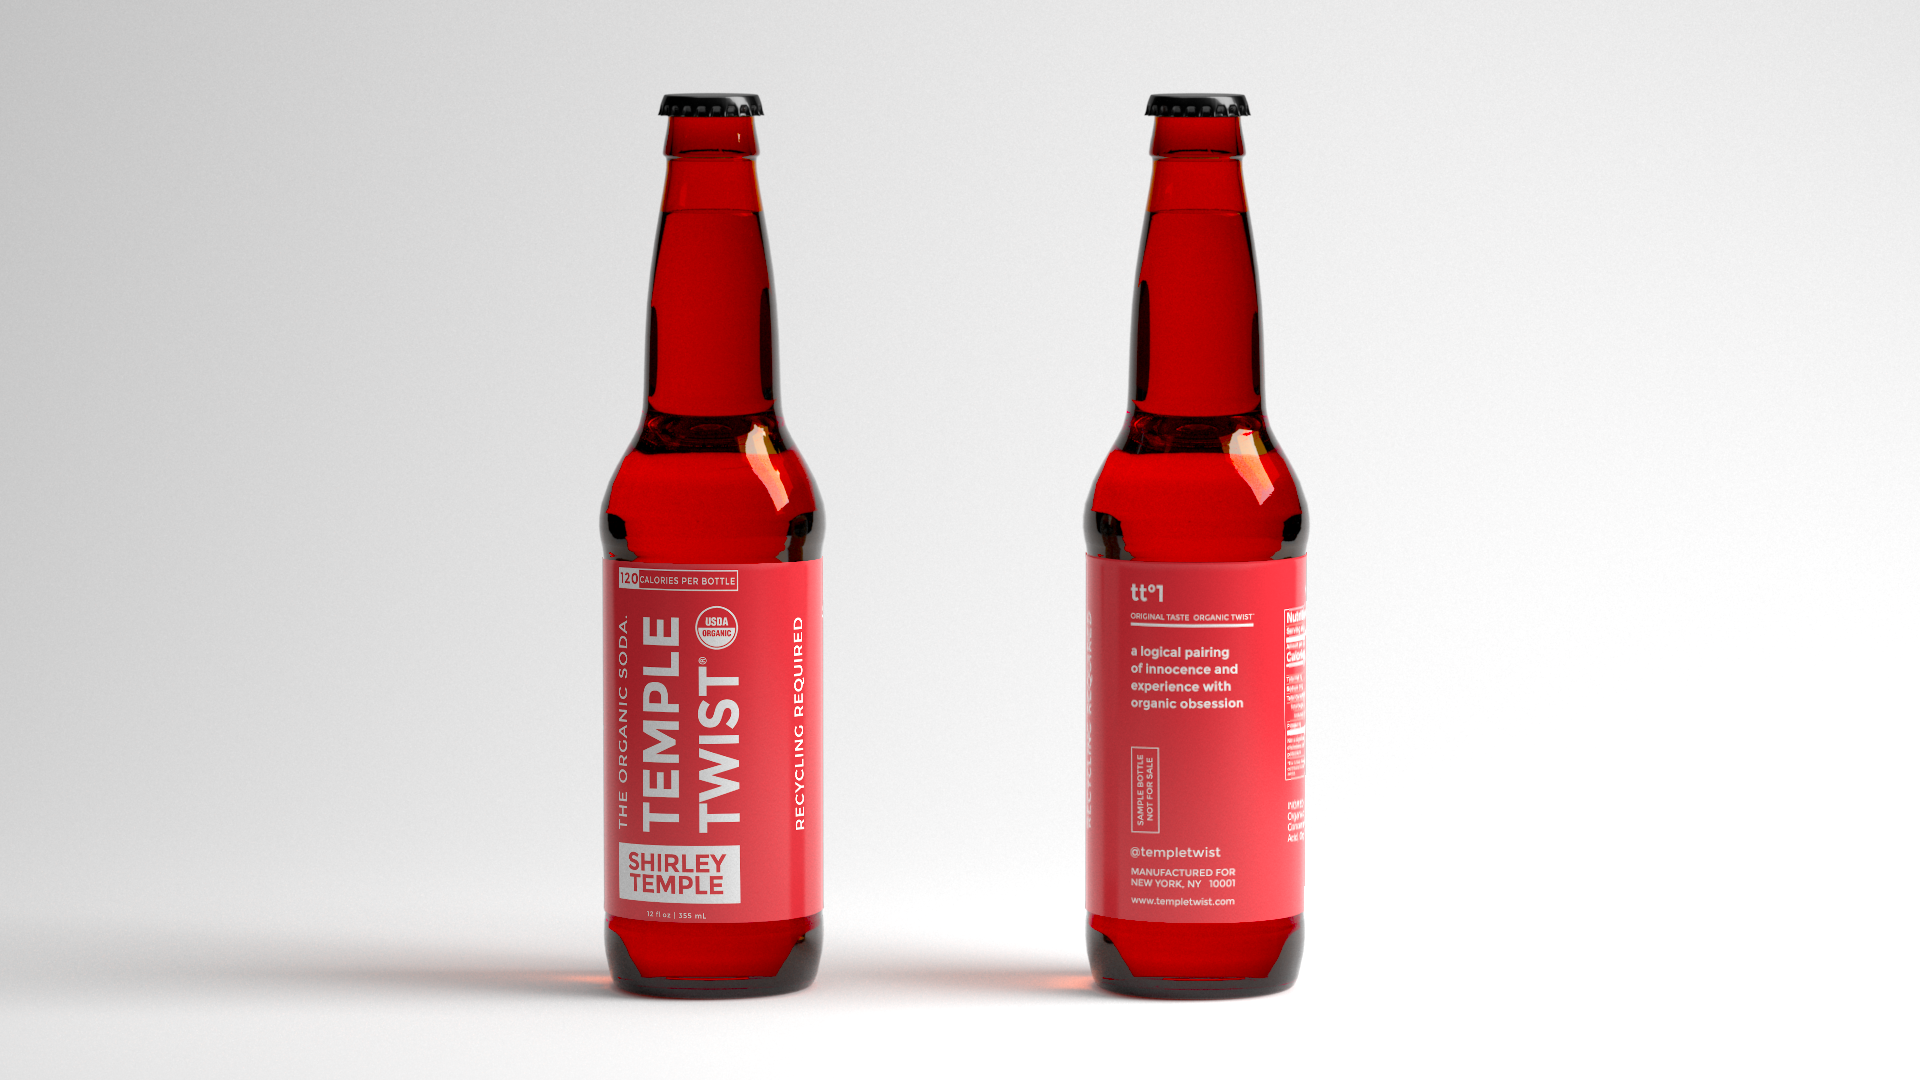 Beer_bottle_mockup_by_marcinjarka.png